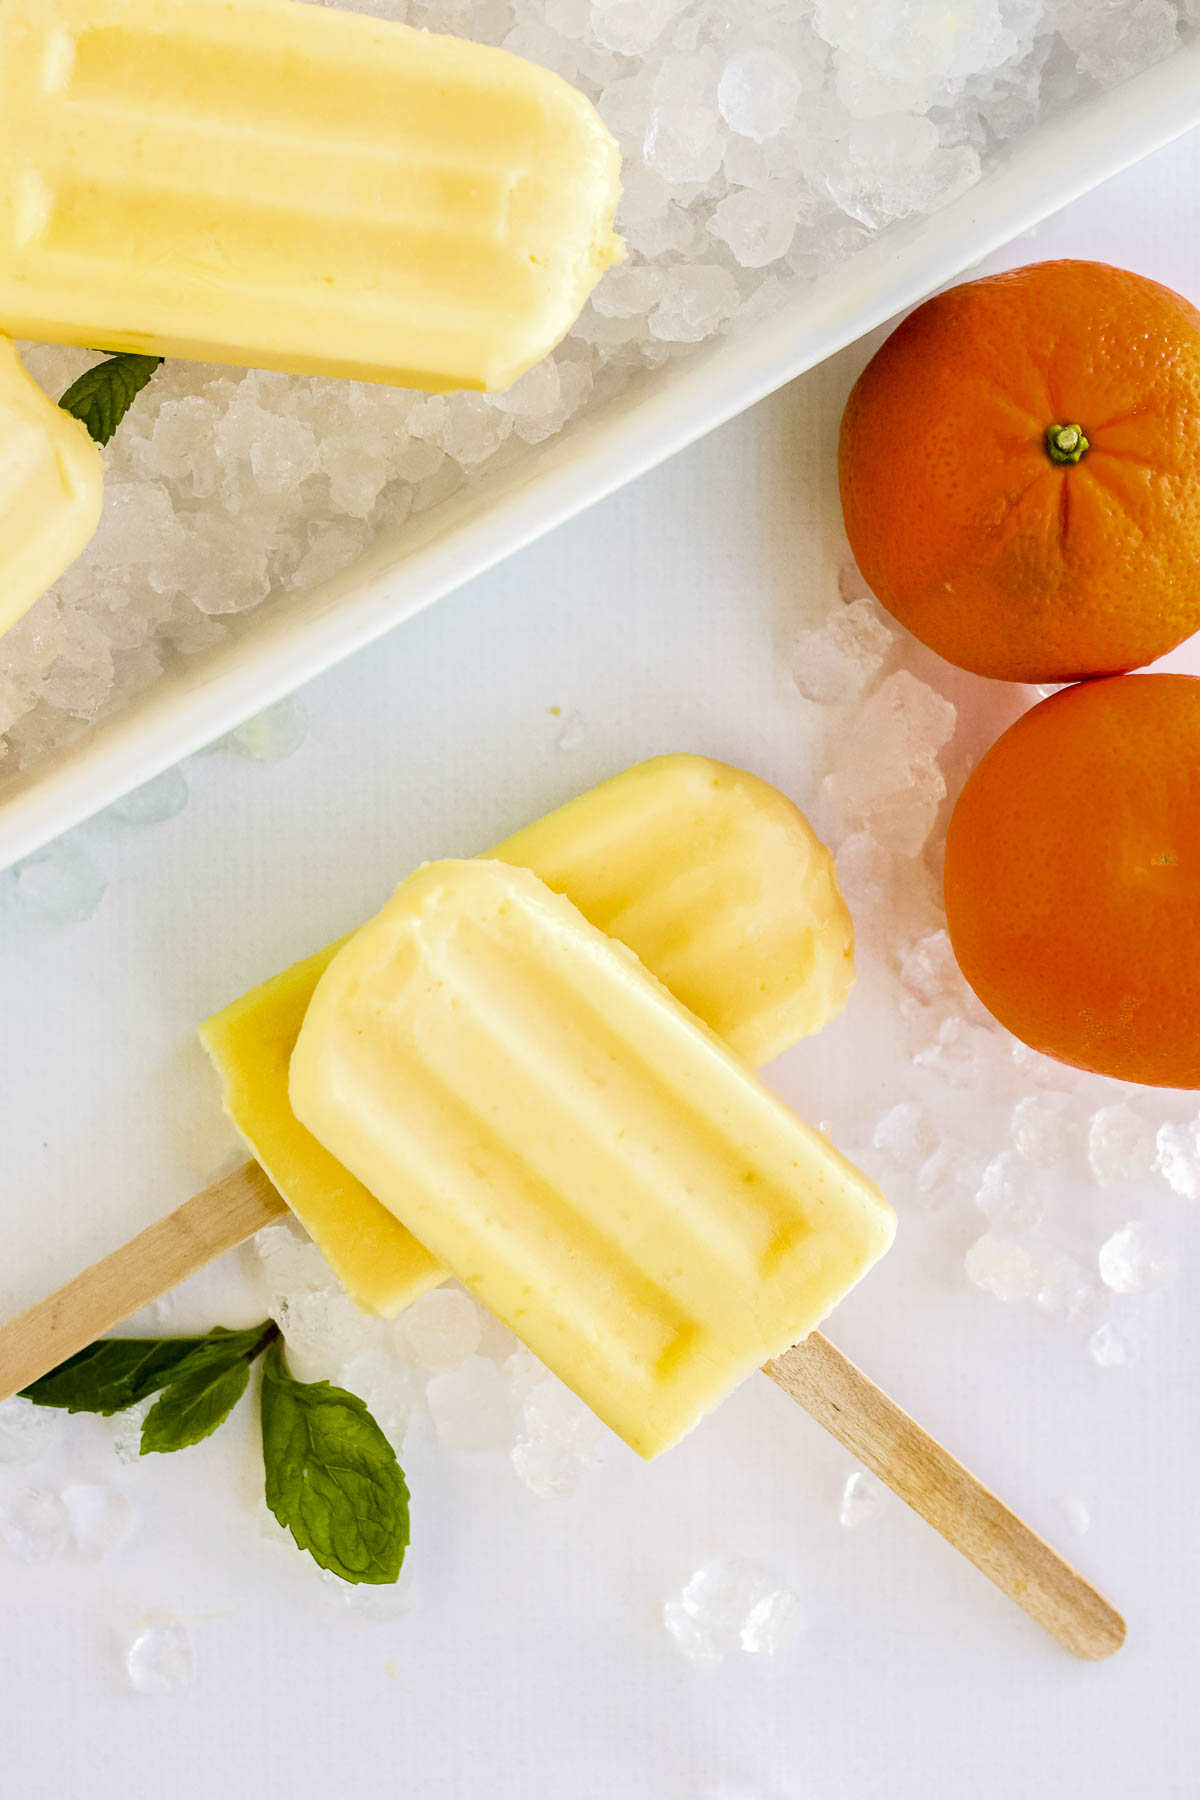 Two orange popsicles stacked on top of each other.